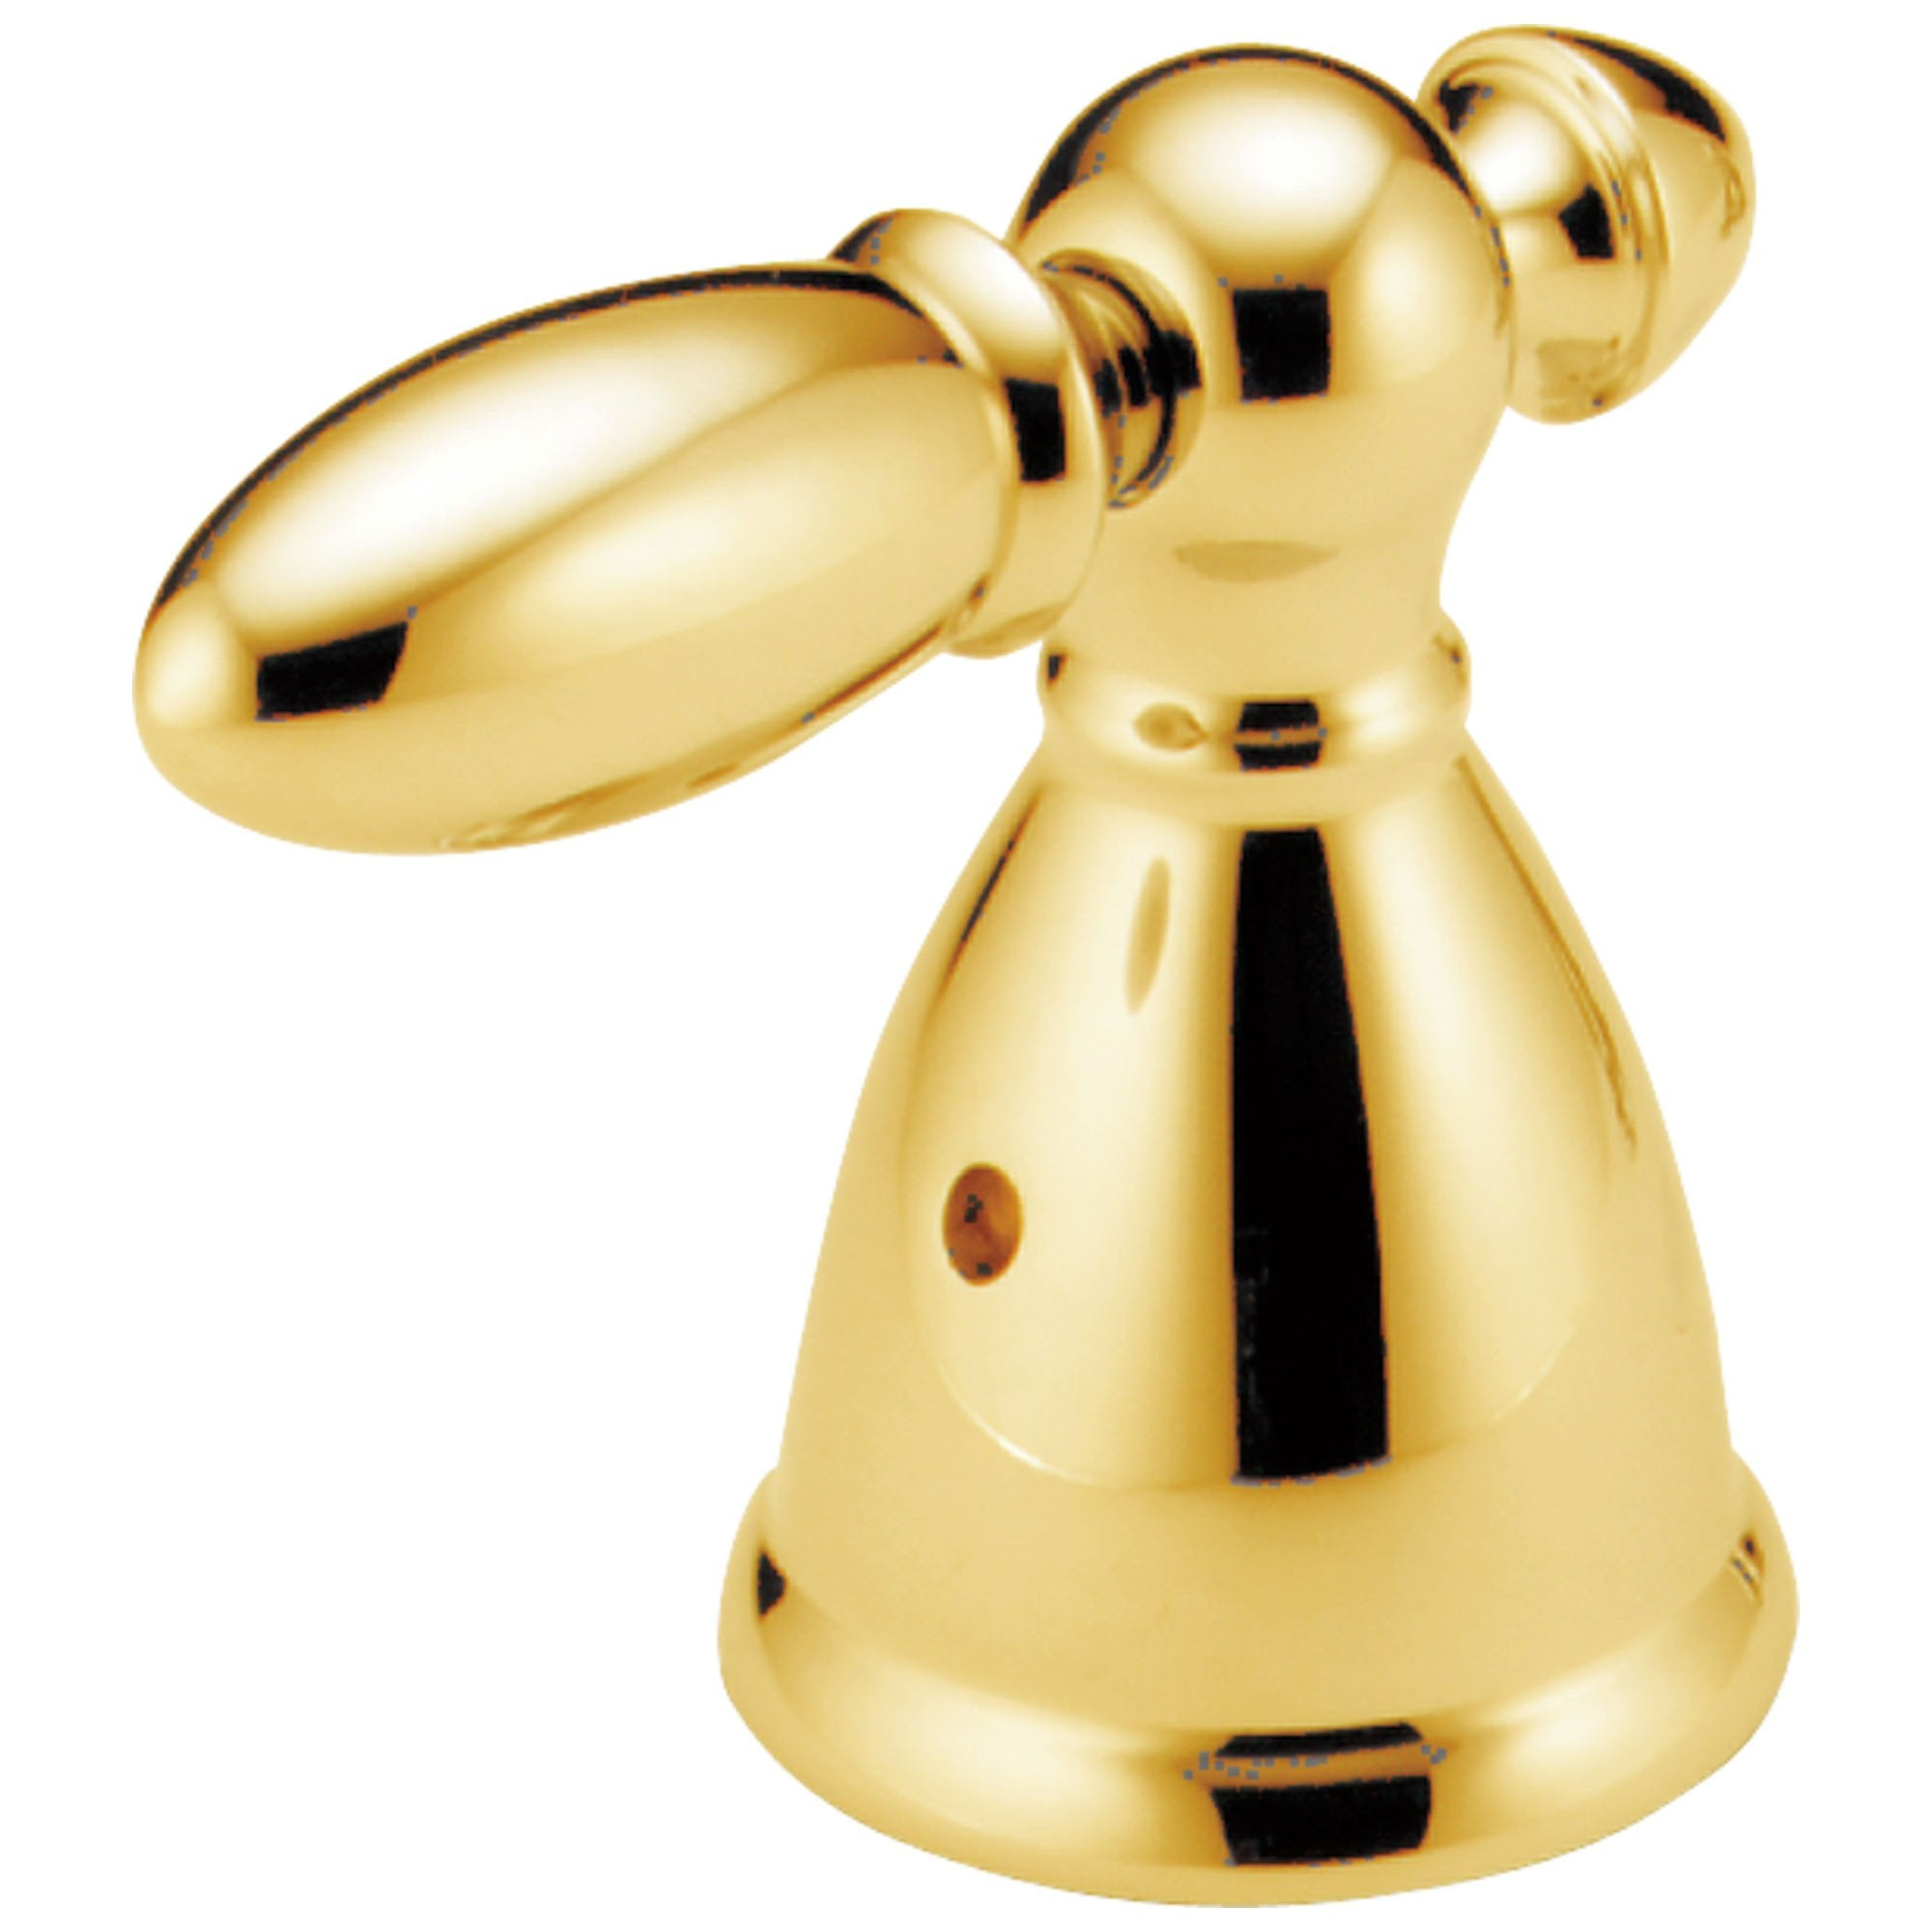 Delta Victorian Collection Polished Brass Finish Diverter / Transfer Valve Metal Lever Handle - Quantity 1 Included DH516PB